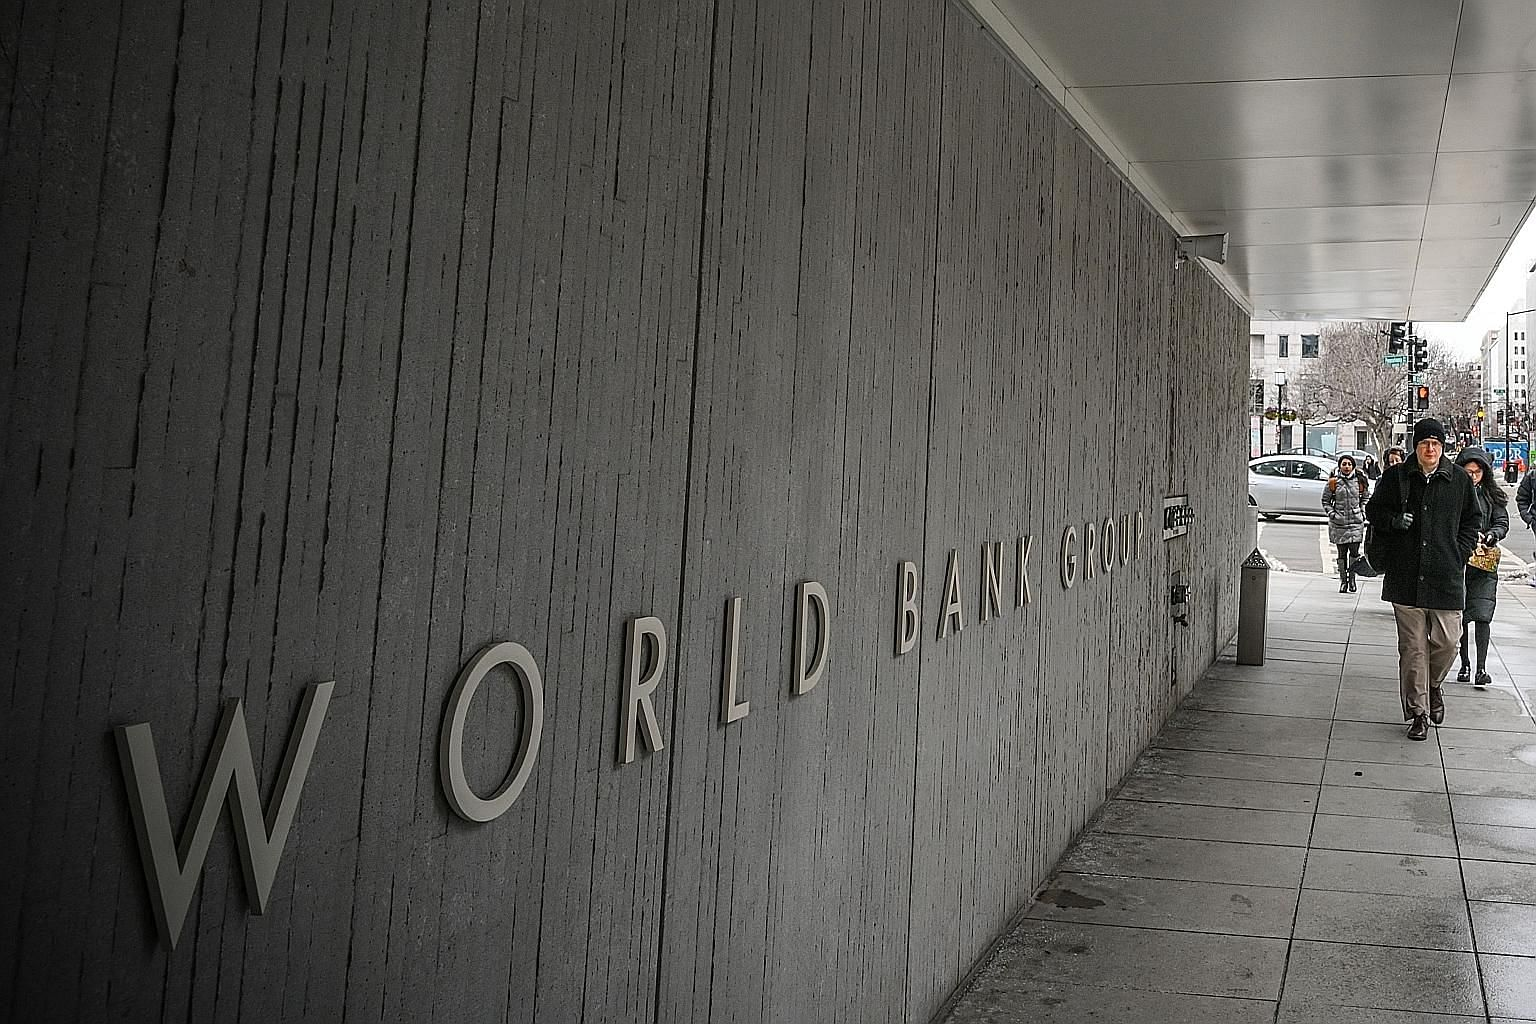 Pedestrians walking past the World Bank building in Washington. To stay relevant, the World Bank needs to move beyond being a lender for development by coupling financing with its skills and expertise in today's most pressing problems of rapid urbani